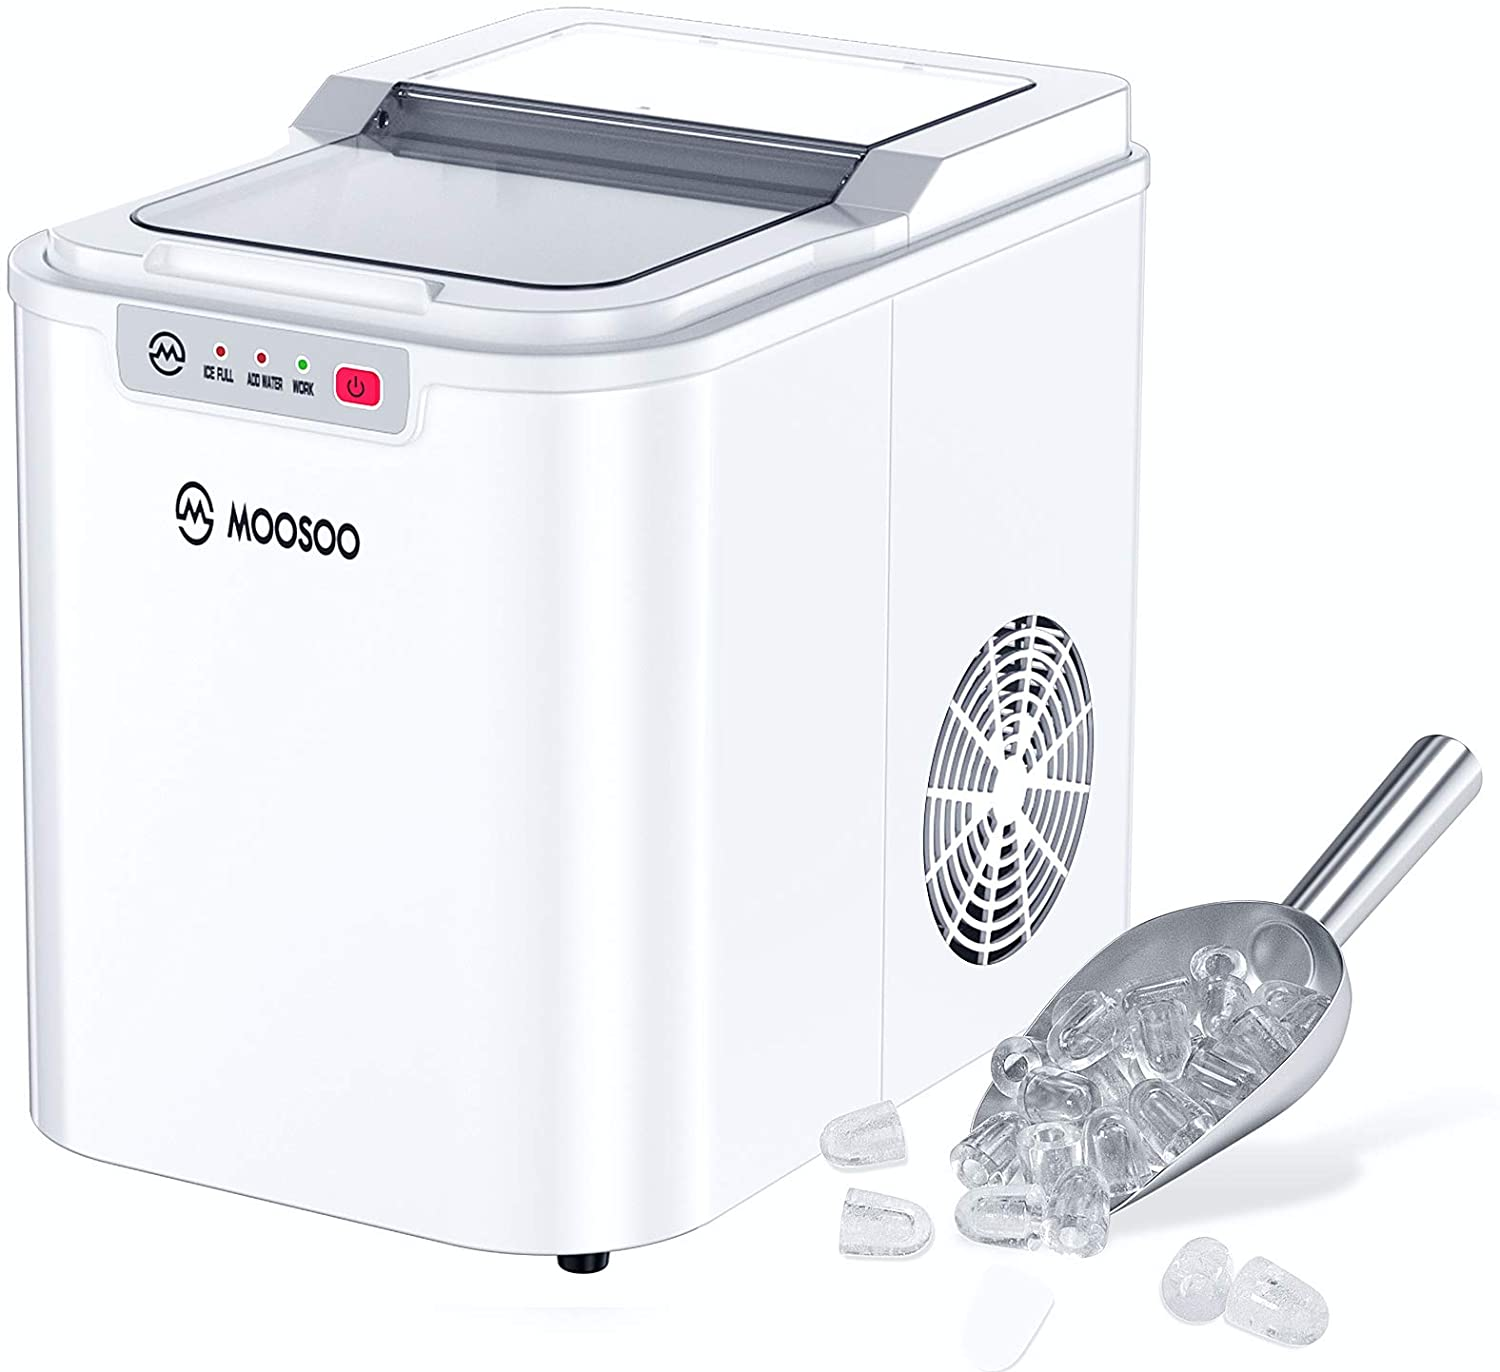 Moosoo Portable Ice Maker Countertop 9 Ice Cubes Ice Maker Machine 26lbs 24h With Automatic Cleaning Function White Walmart Com Walmart Com